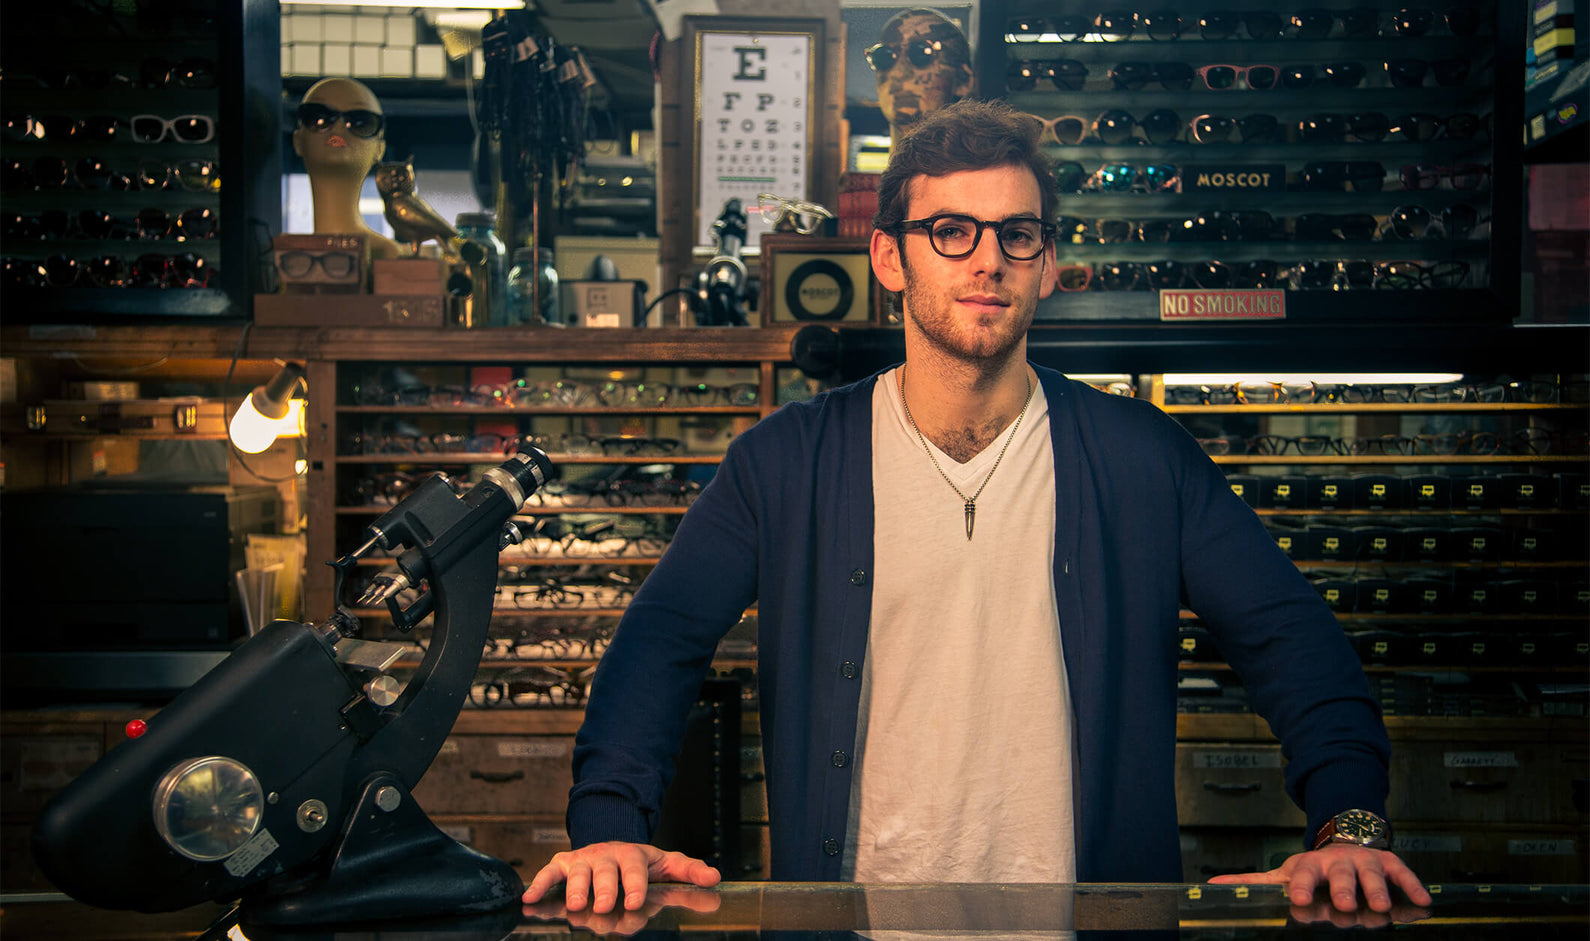 Man behind counter at Moscot store